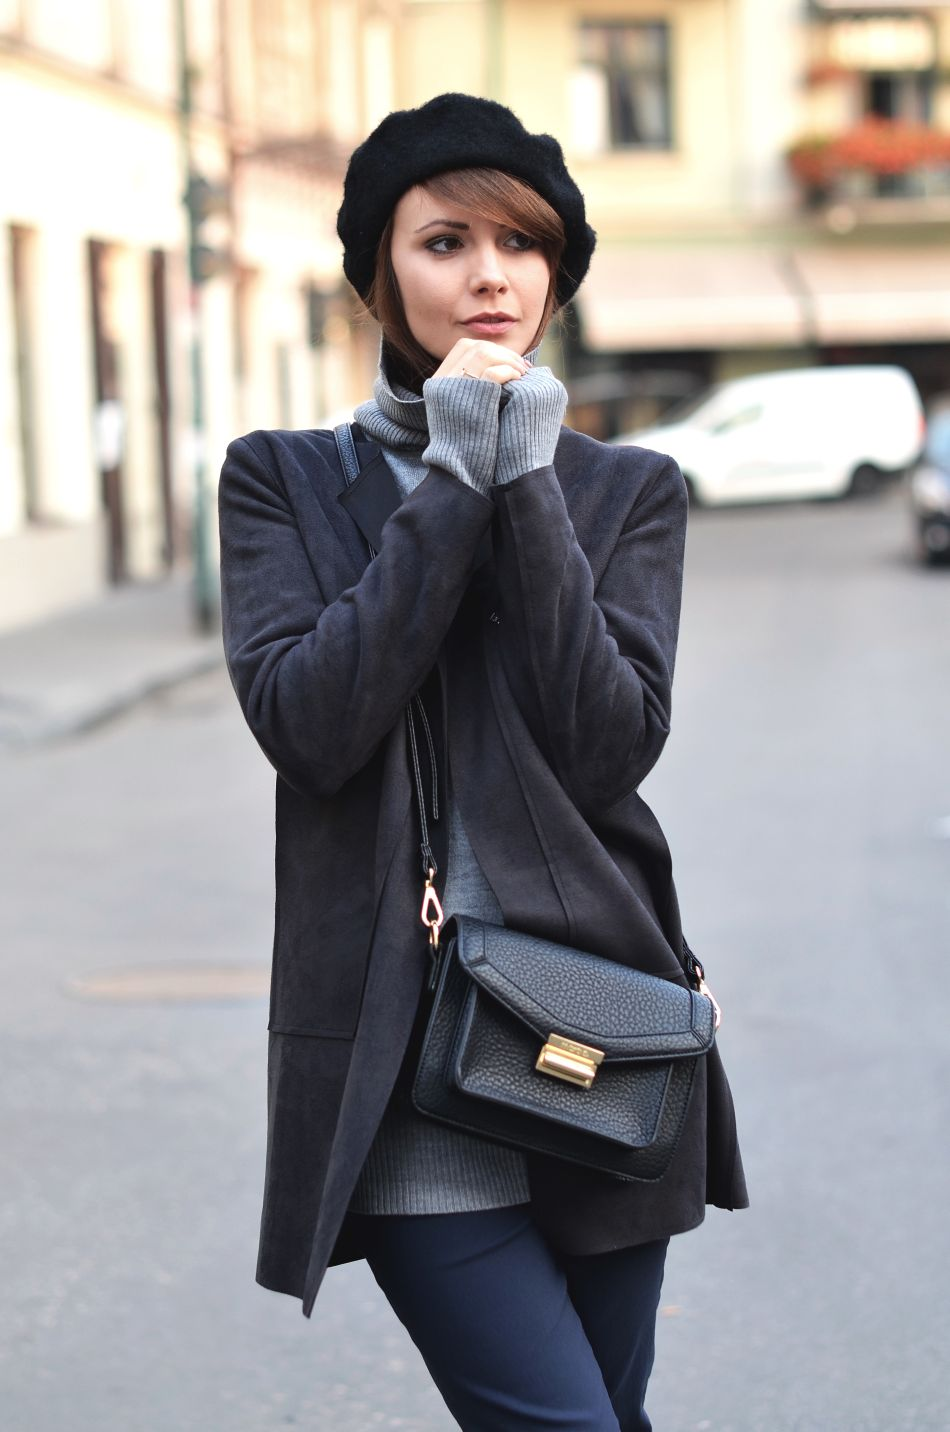 Kamila Leciak looks cute in a beret and pullover. Trousers: Preska, Coat: Tova.